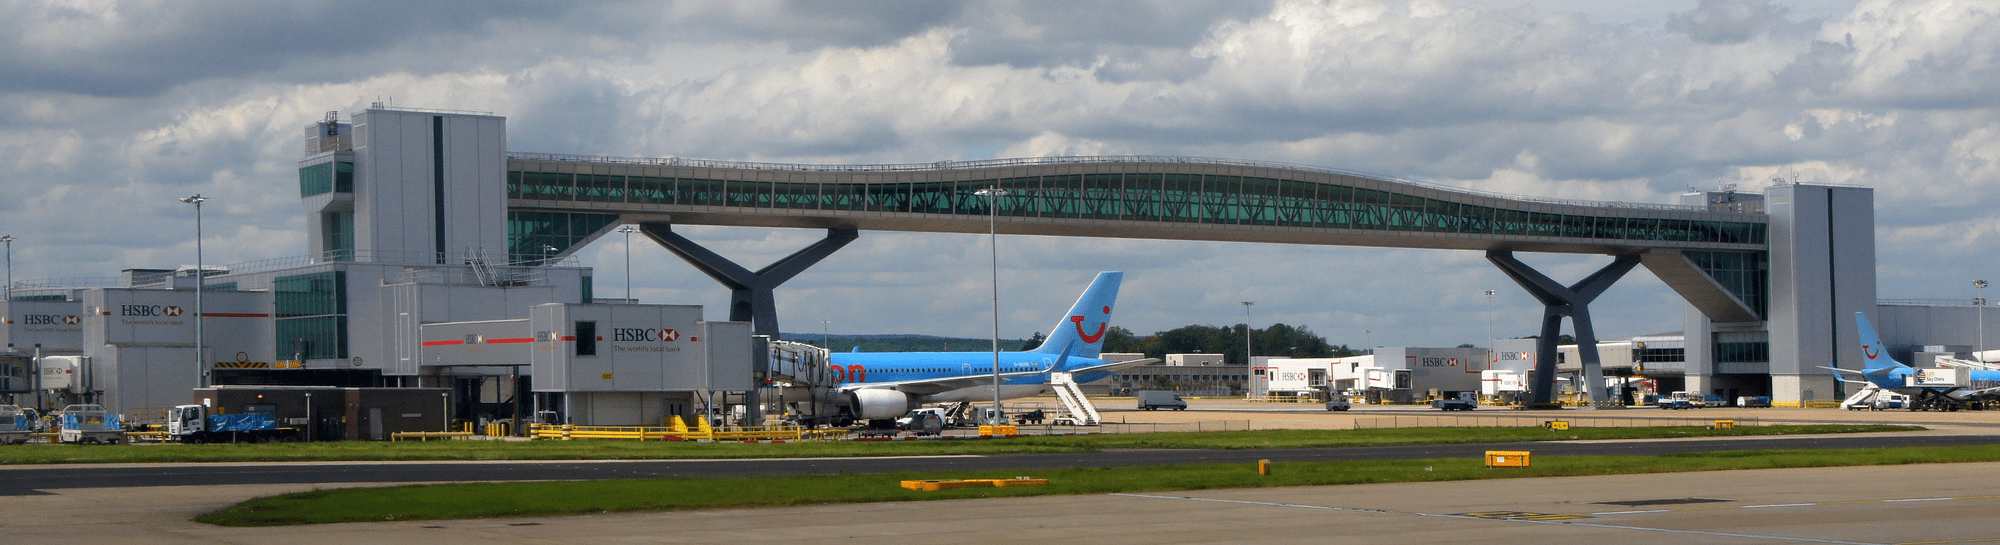 Airport london-gatwick